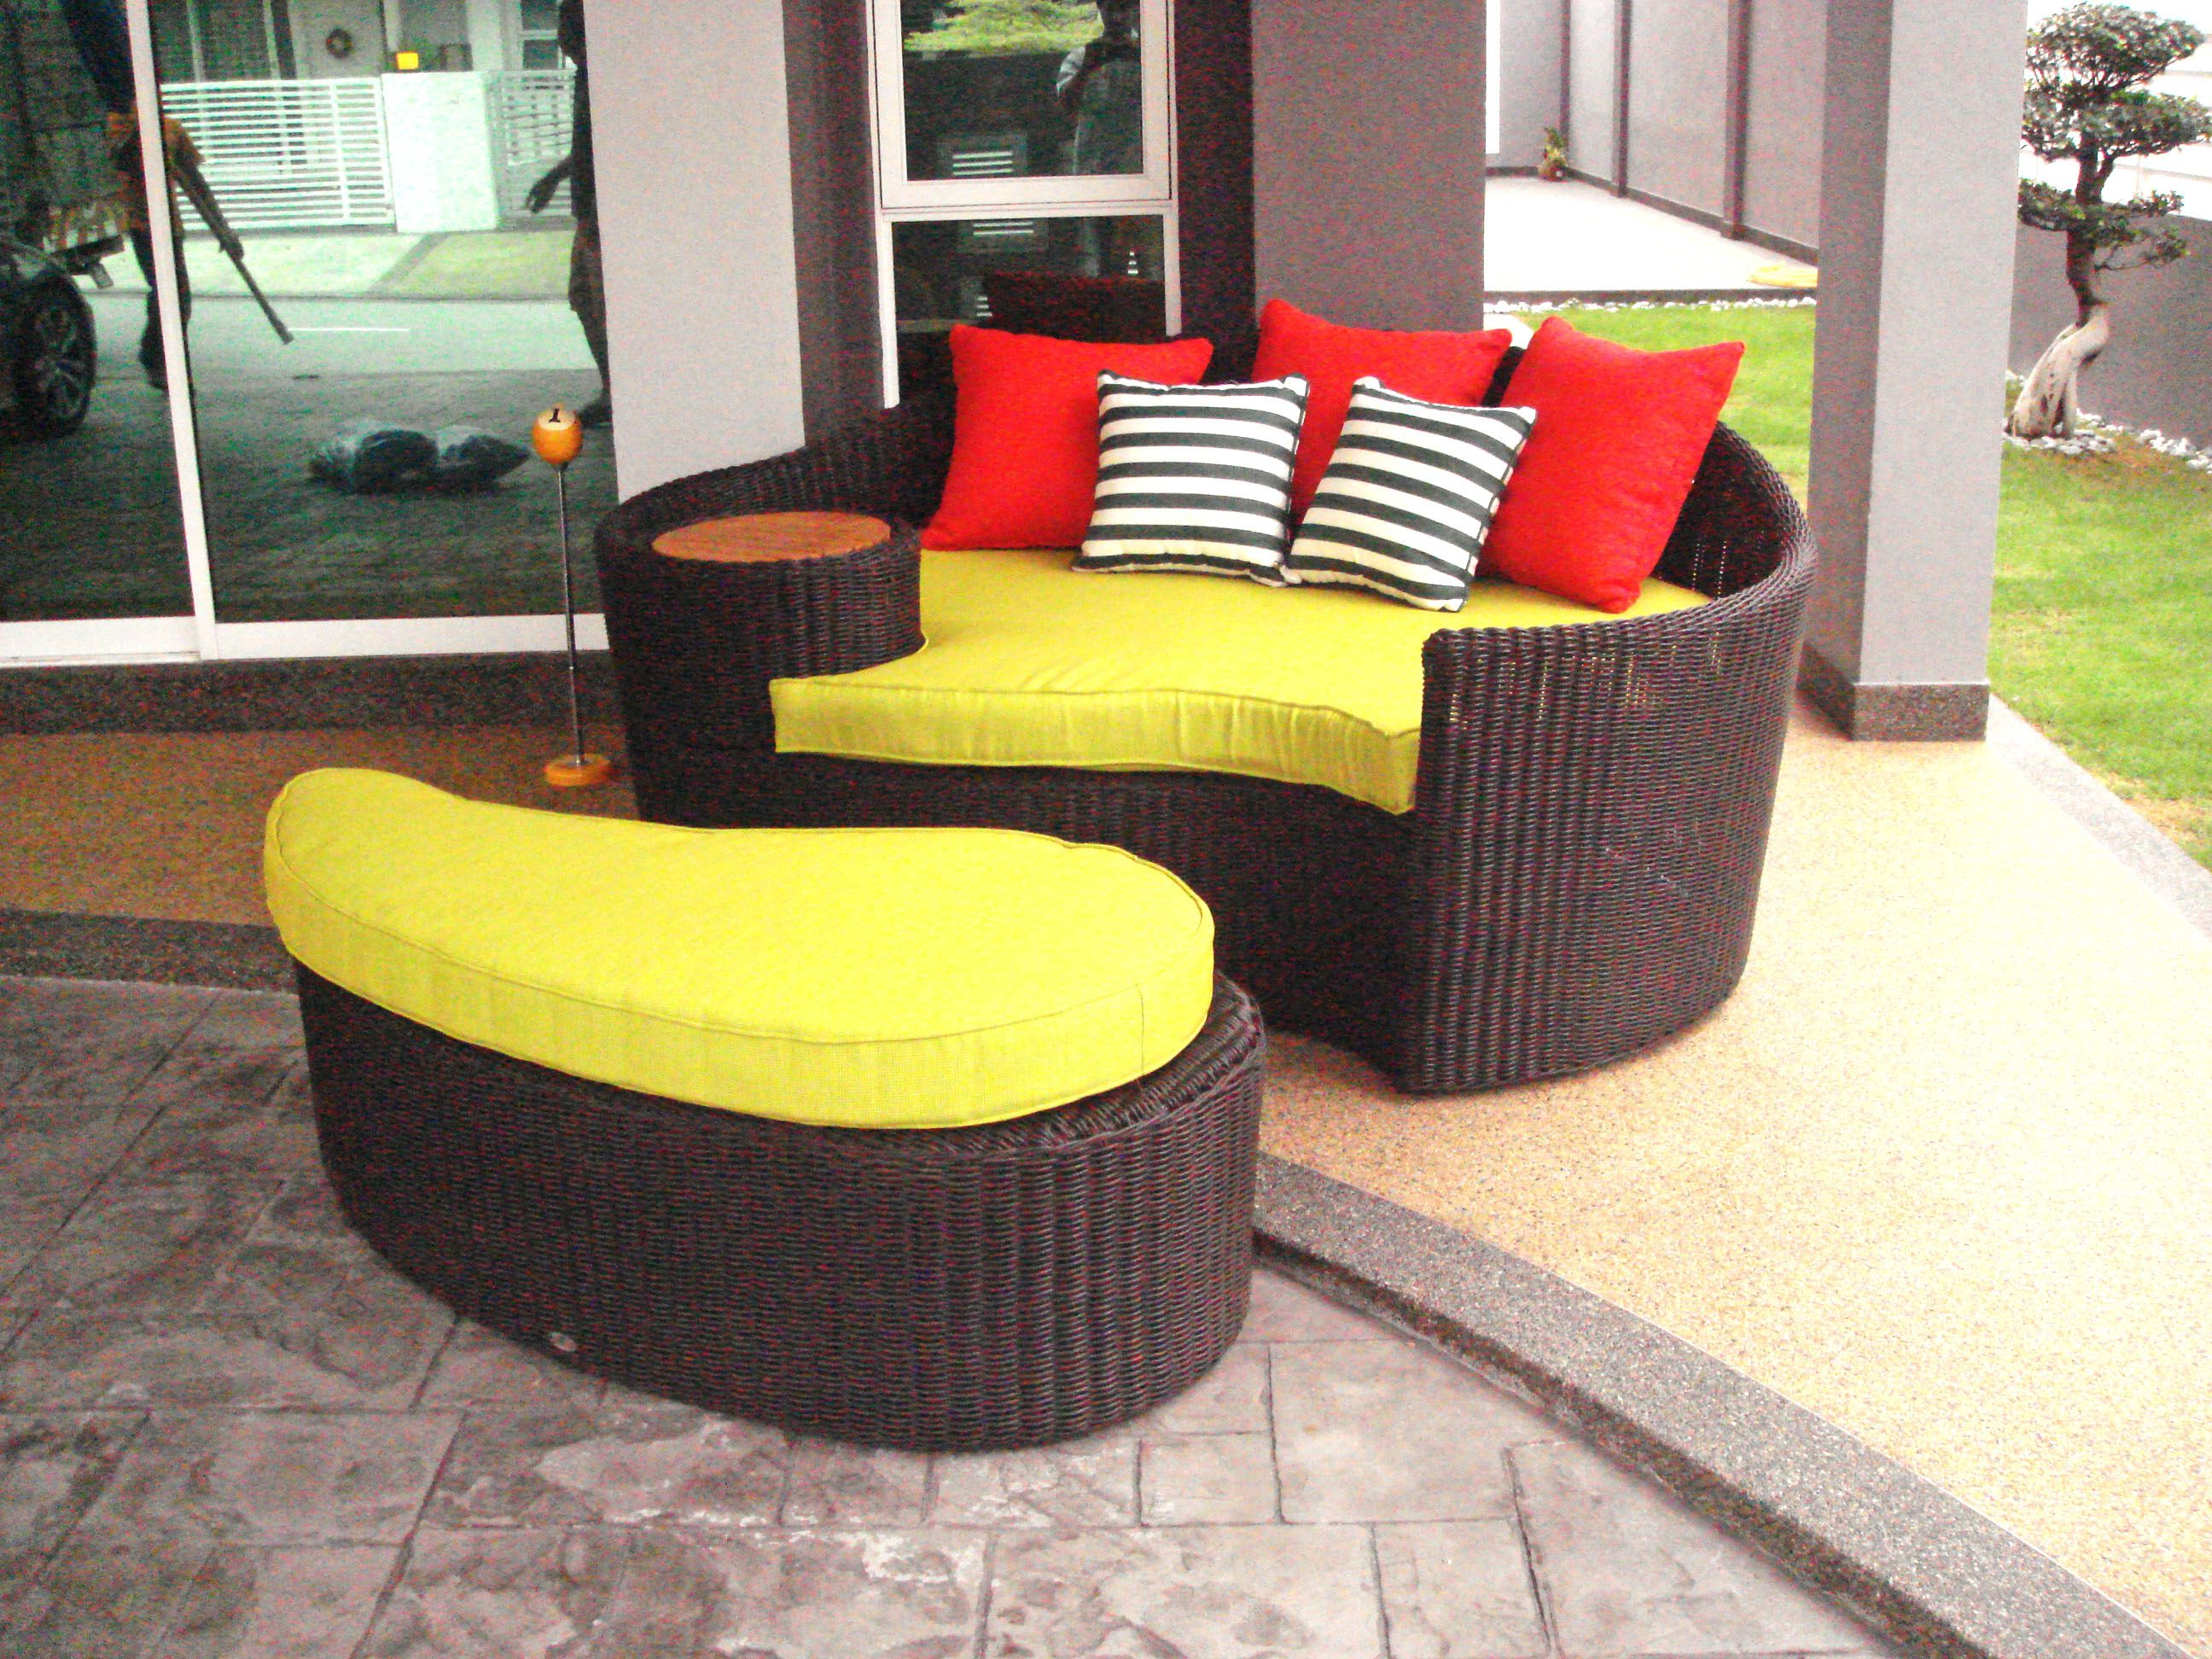 Bali Daybed Venice Sofa Outdoor